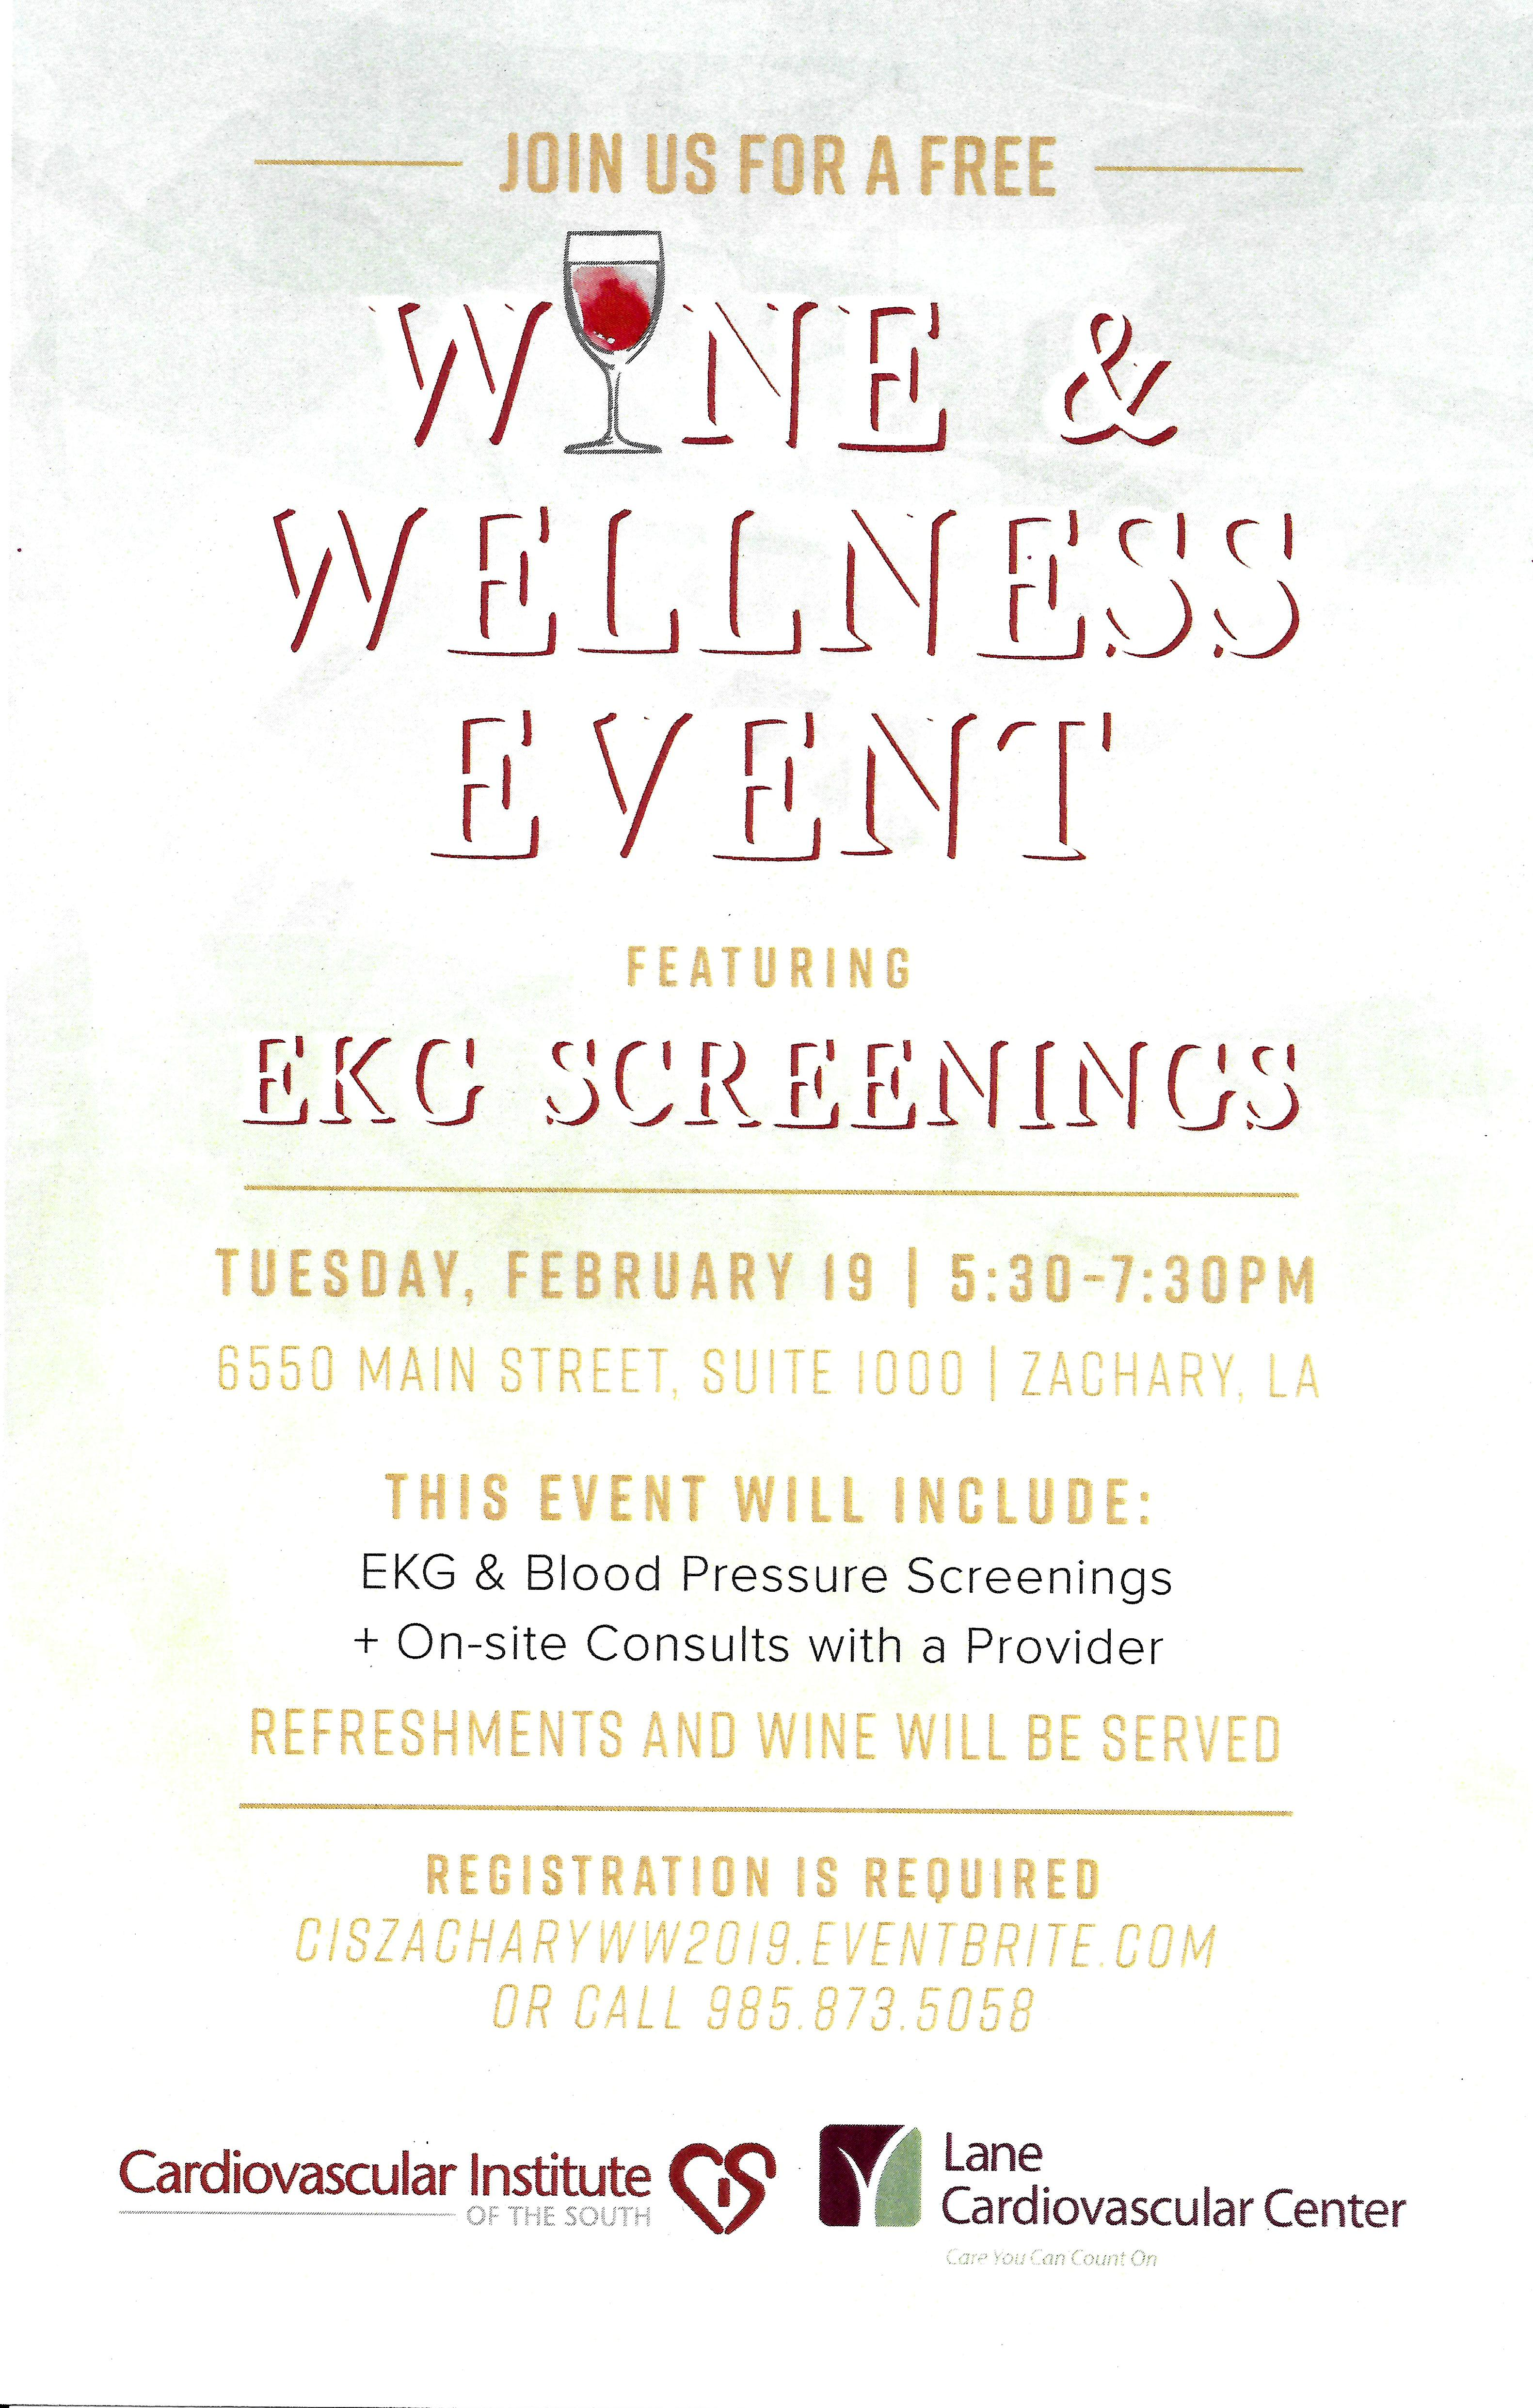 Free Wine & Wellness Event